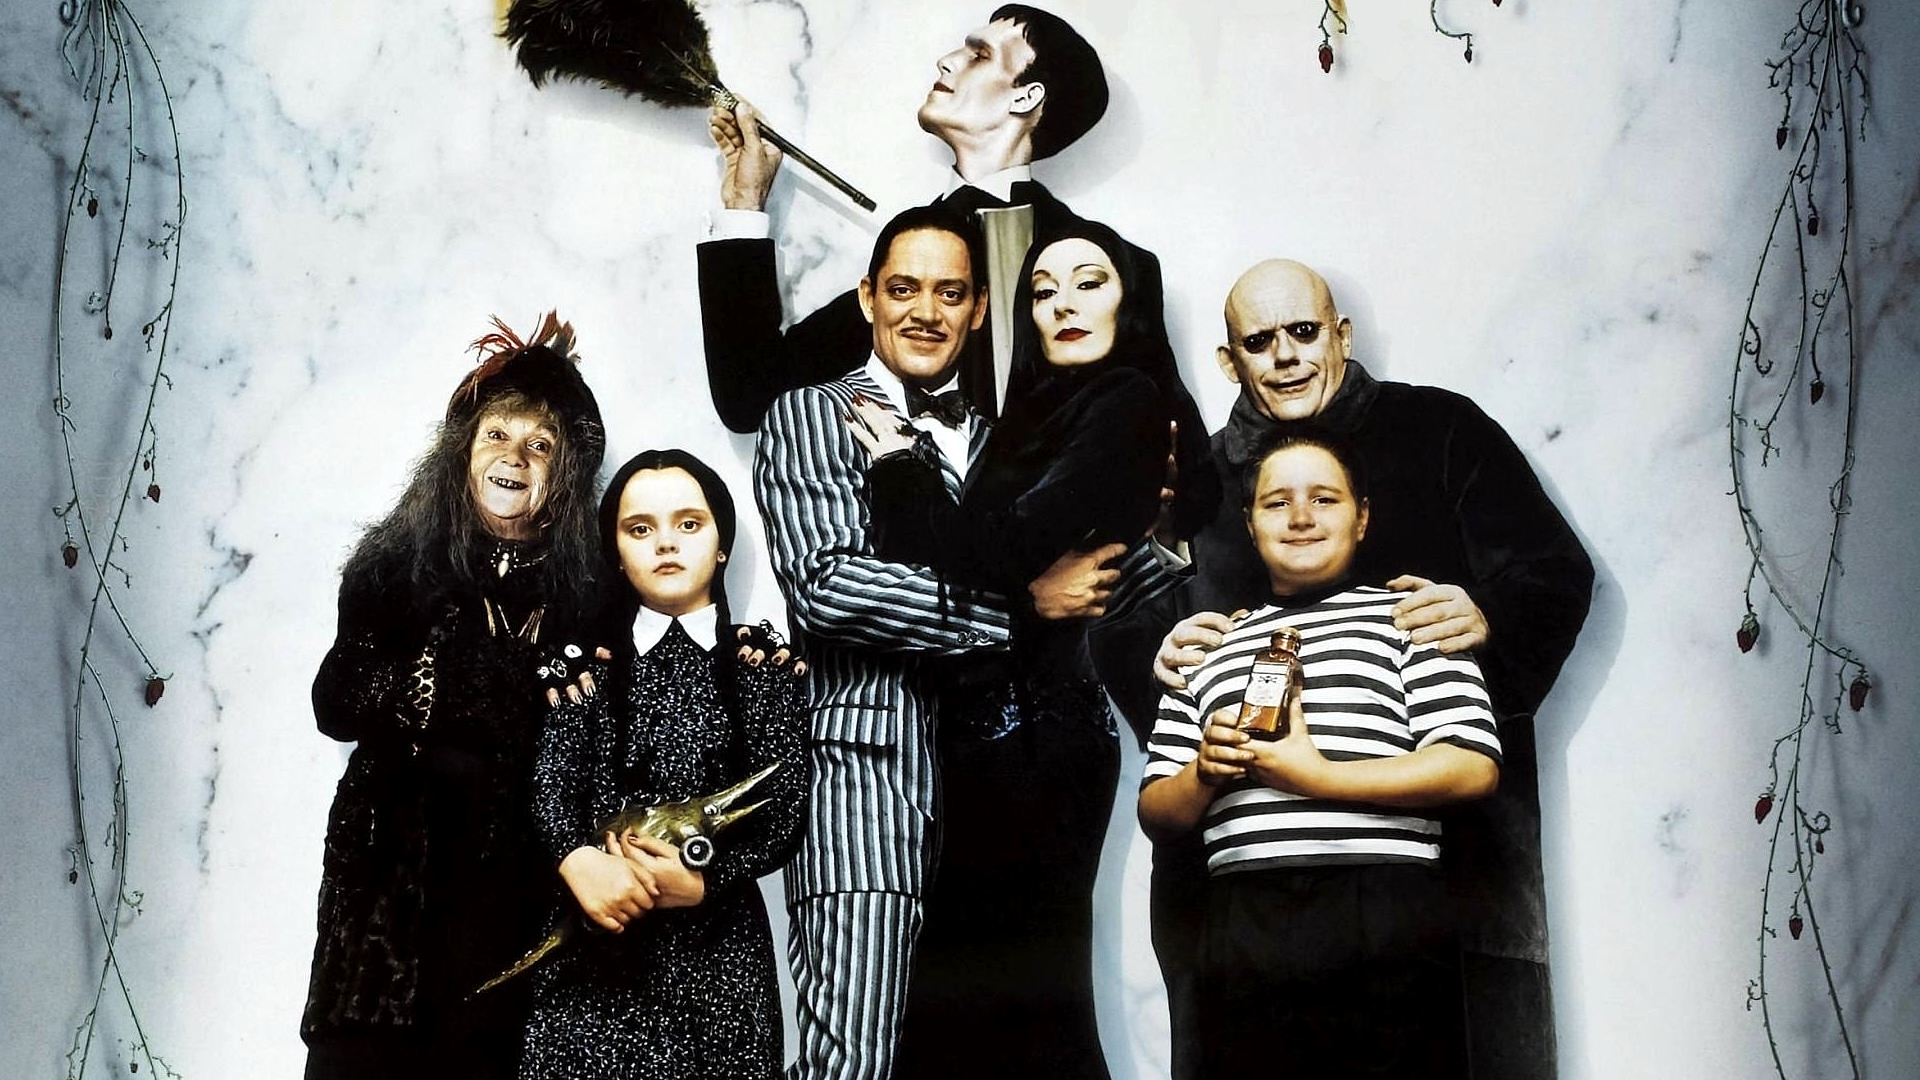 The Addams Family Wallpaper Addams Family HD The Addams Family, Wednesday Addams & Addams Family Cast